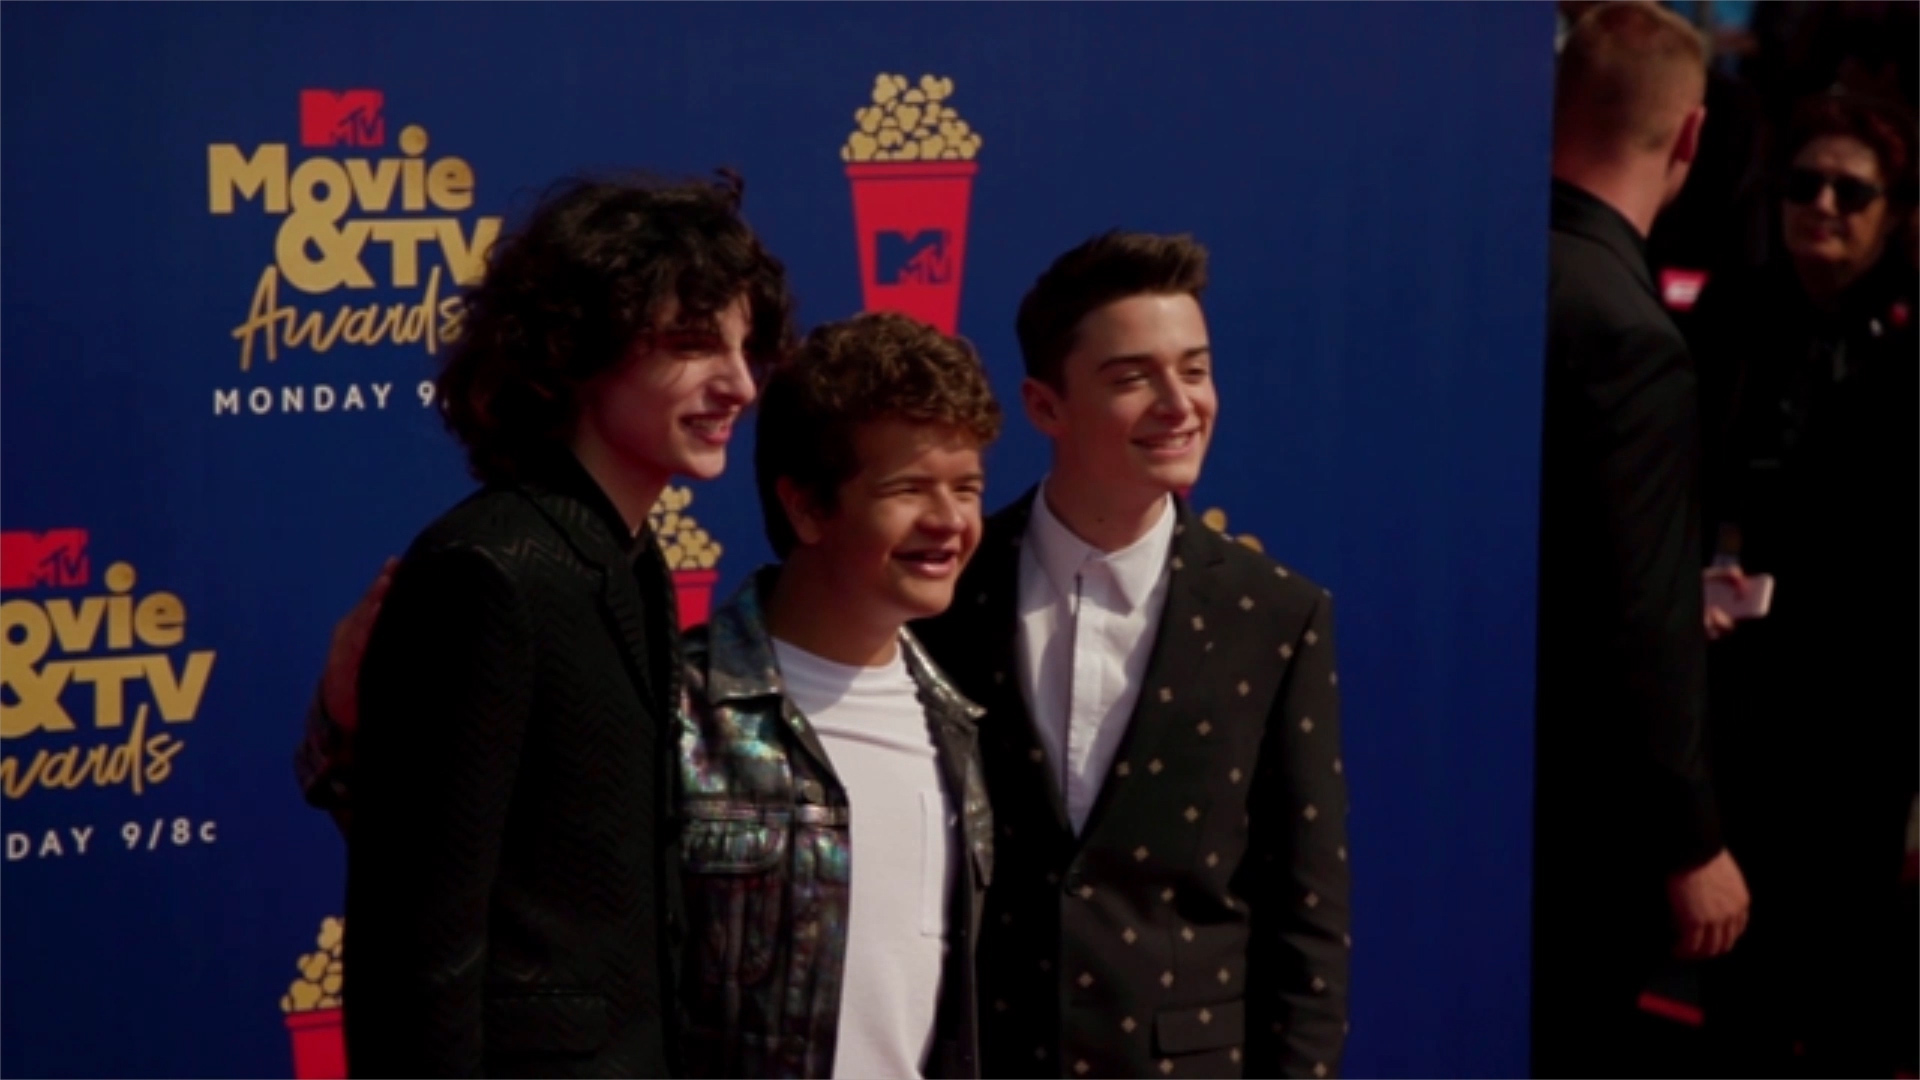 Stranger Things Series 3 Is 'Very Sad' And Fans Should 'Be Prepared' Warns Star Noah Schnapp